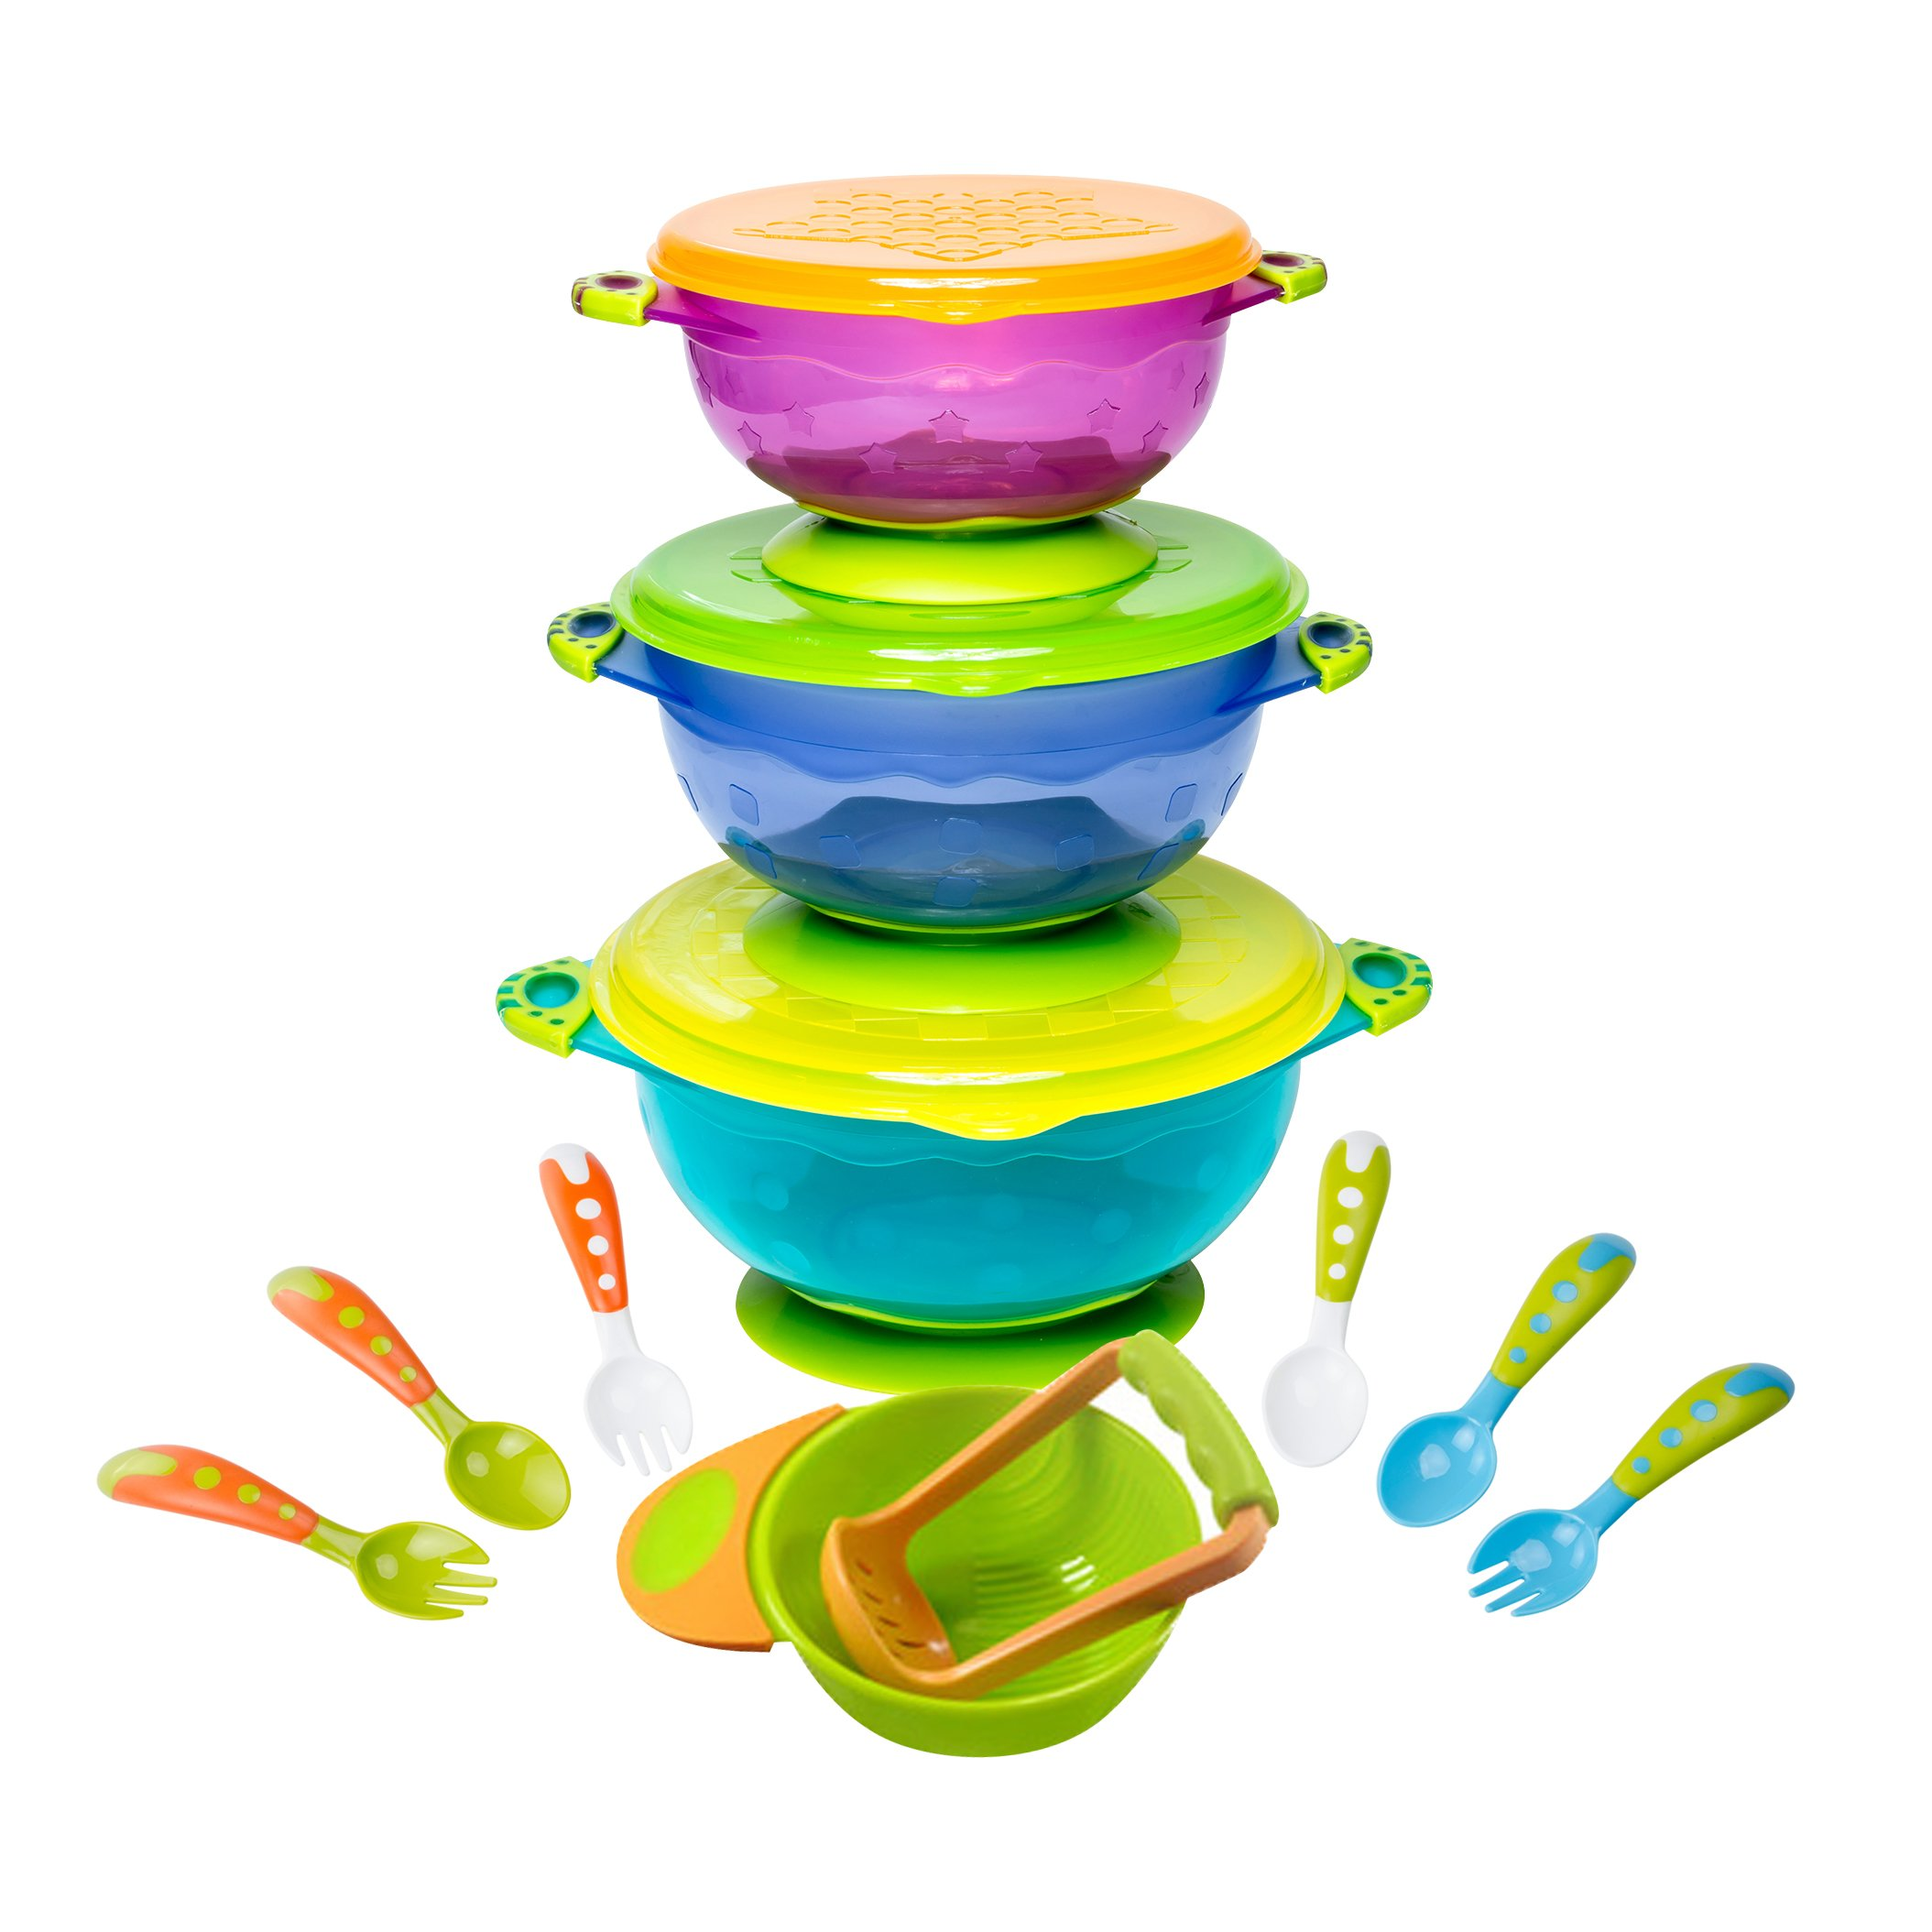 Baby Bowls Feeding Set with Baby Fork and Baby Spoons BPA Free | Toddler Bowls with Baby Food Masher | Suction Baby Bowl for Toddlers with Toddler Utensils |Baby Bowls with Suction | Baby Shower Regis